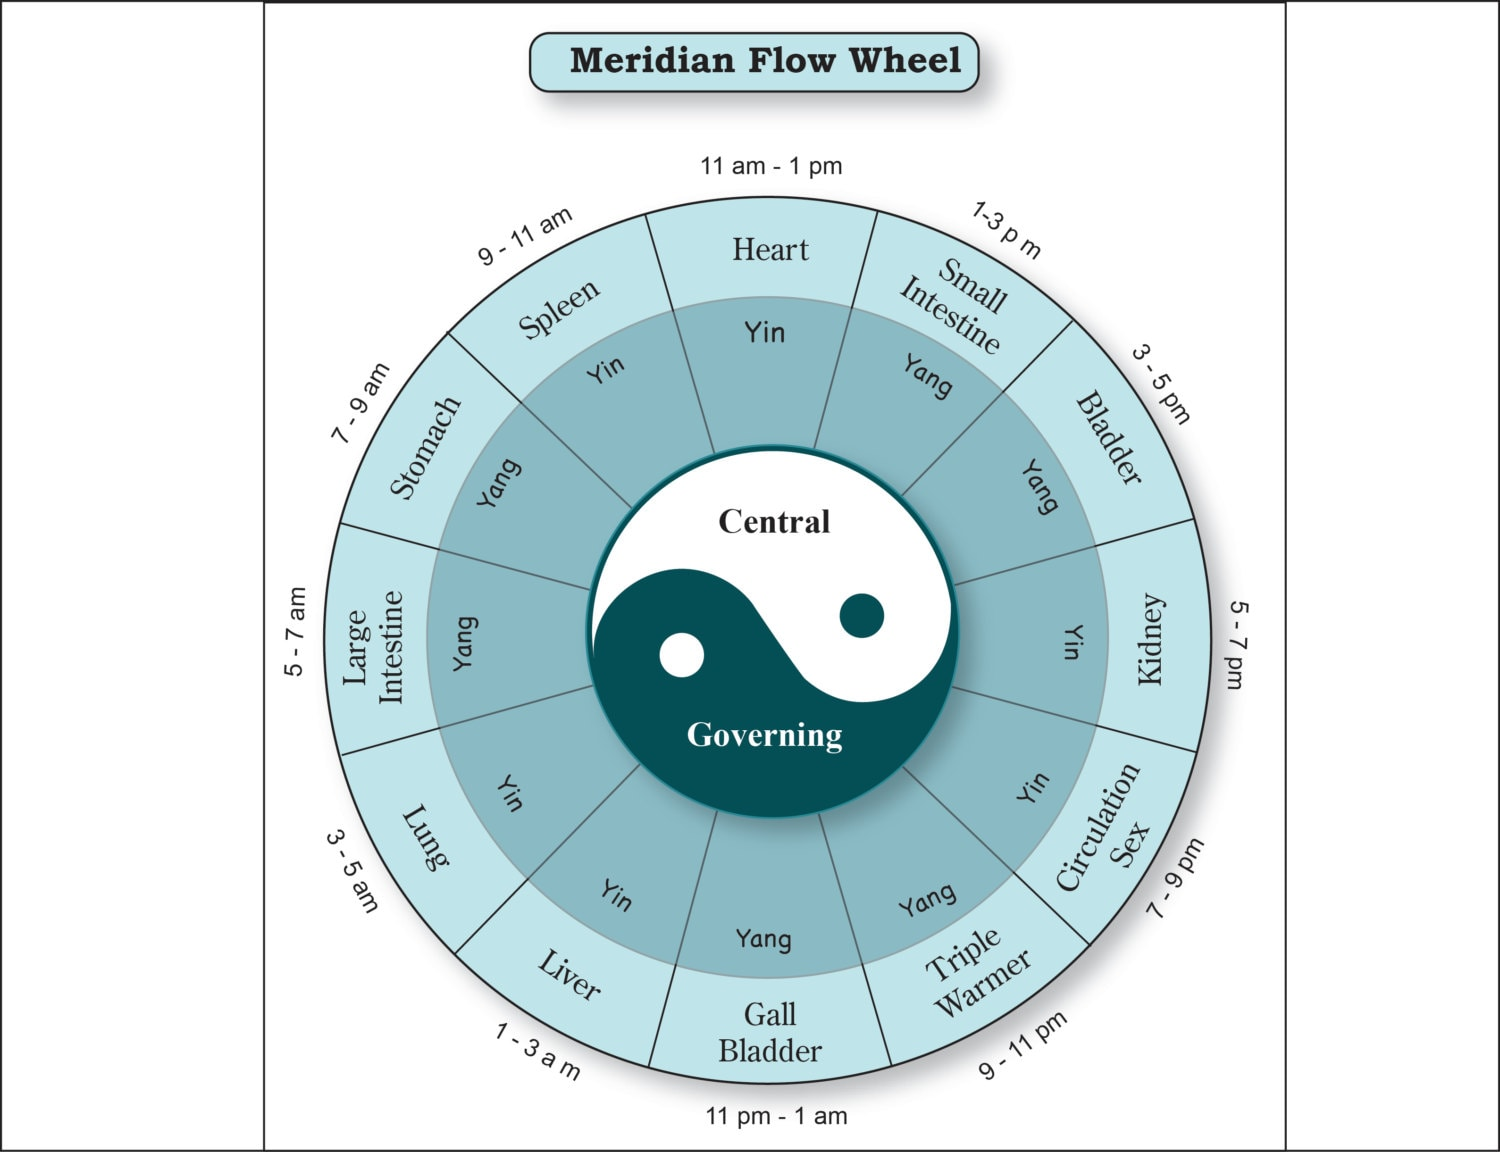 Meridian hourly flow printable chart wheel chinese medicine meridian hourly flow printable chart wheel chinese medicine acupressure acupuncture massage therapy energy healing qigong chi kung therapy geenschuldenfo Choice Image